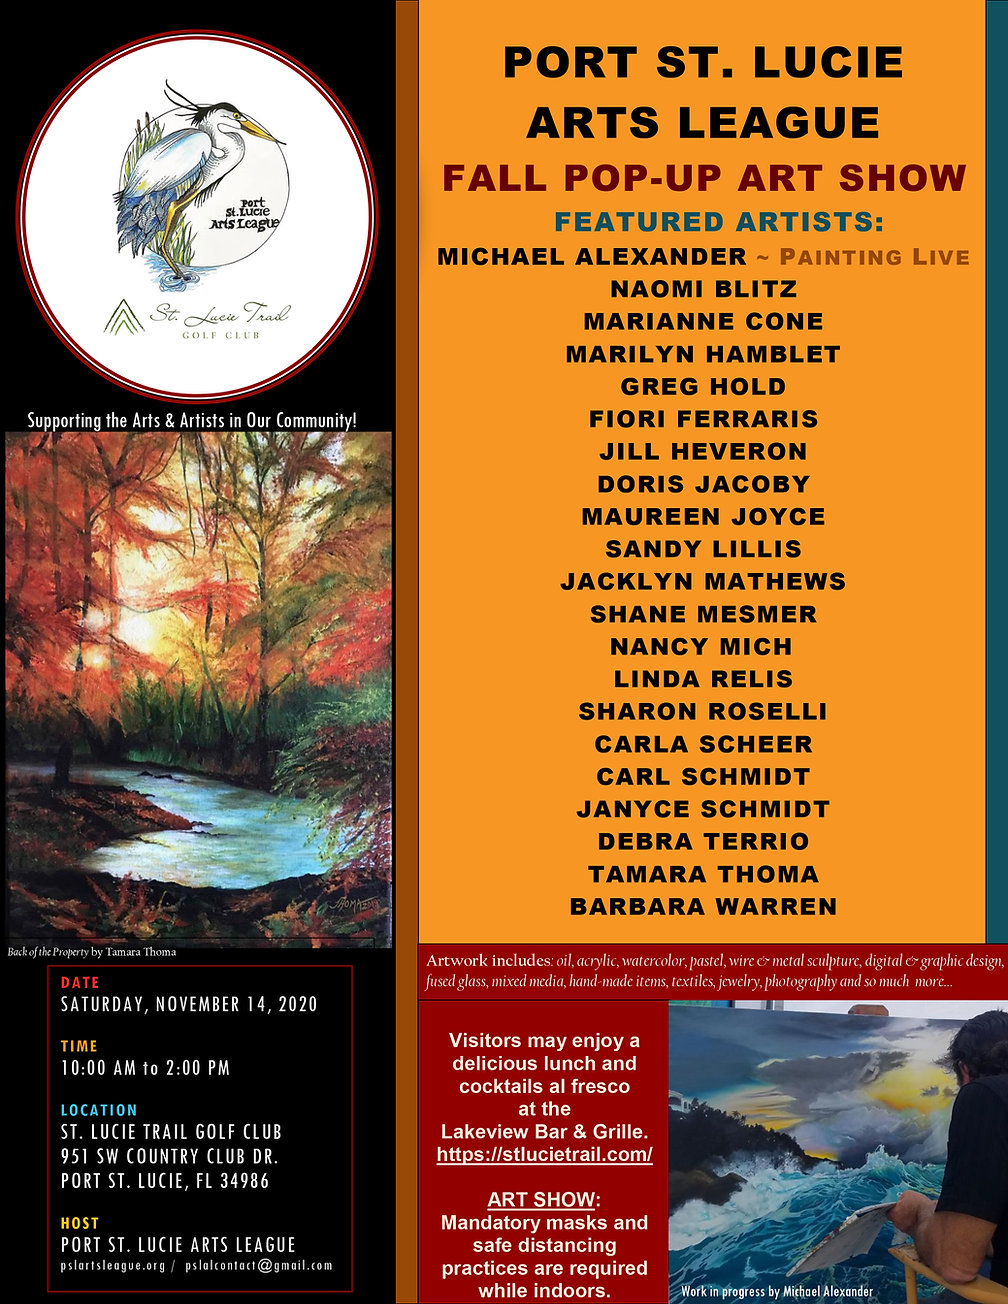 PSLAL Pop-up ART SHOW St. Lucie Trail Go